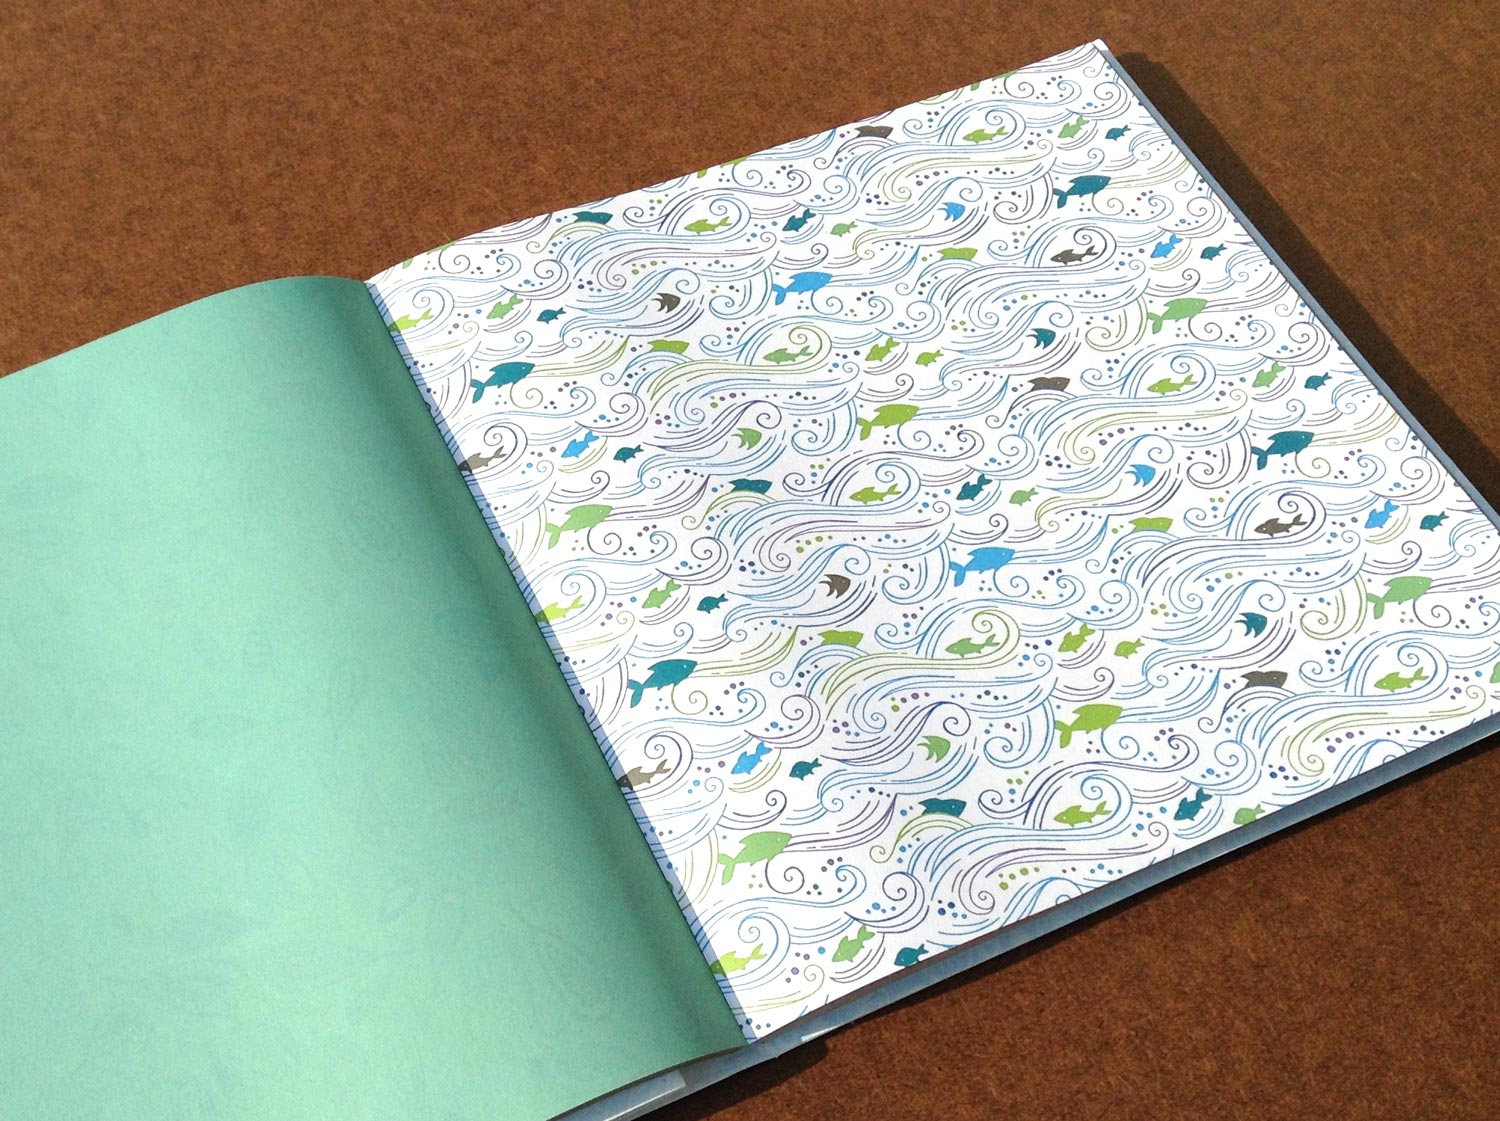 Anni_Betts_Origami_Book_Pattern_spread_1